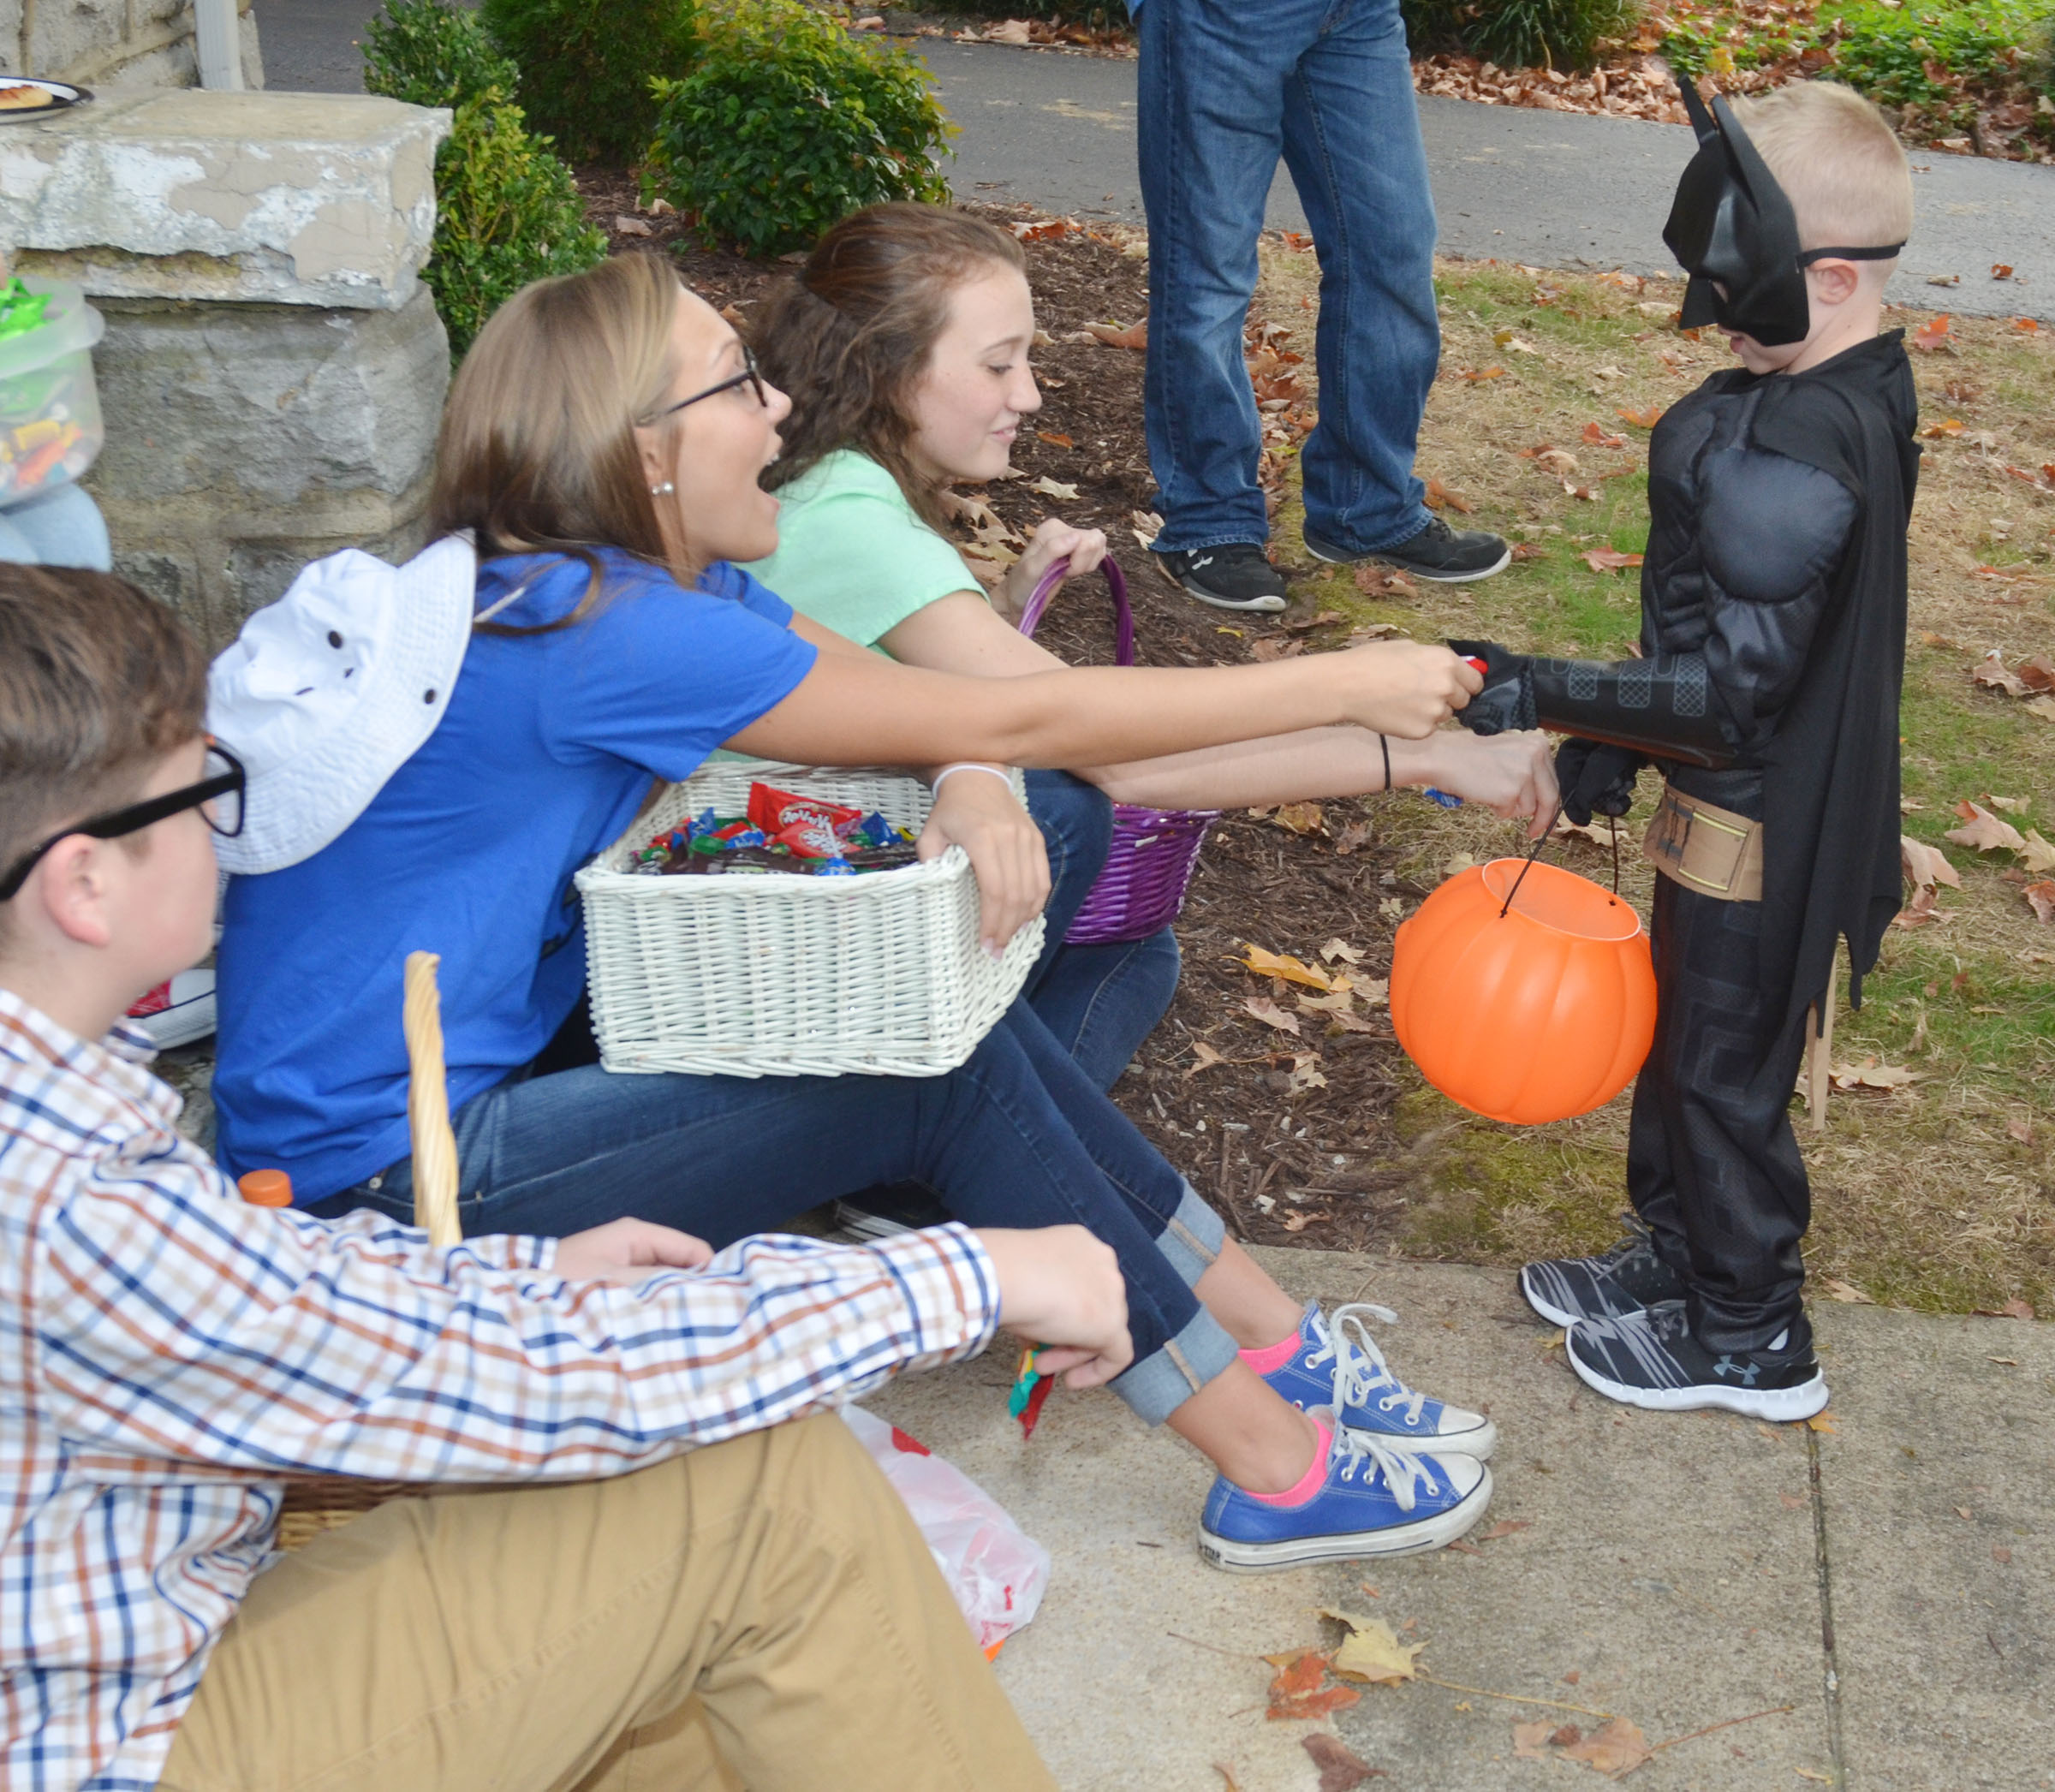 CHS KYA members, from left, freshman Gavin Johnson and sophomores Tatem Wiseman and Salena Ritchie pass out Halloween candy to Campbellsville Elementary School kindergartener Jackson Wright.